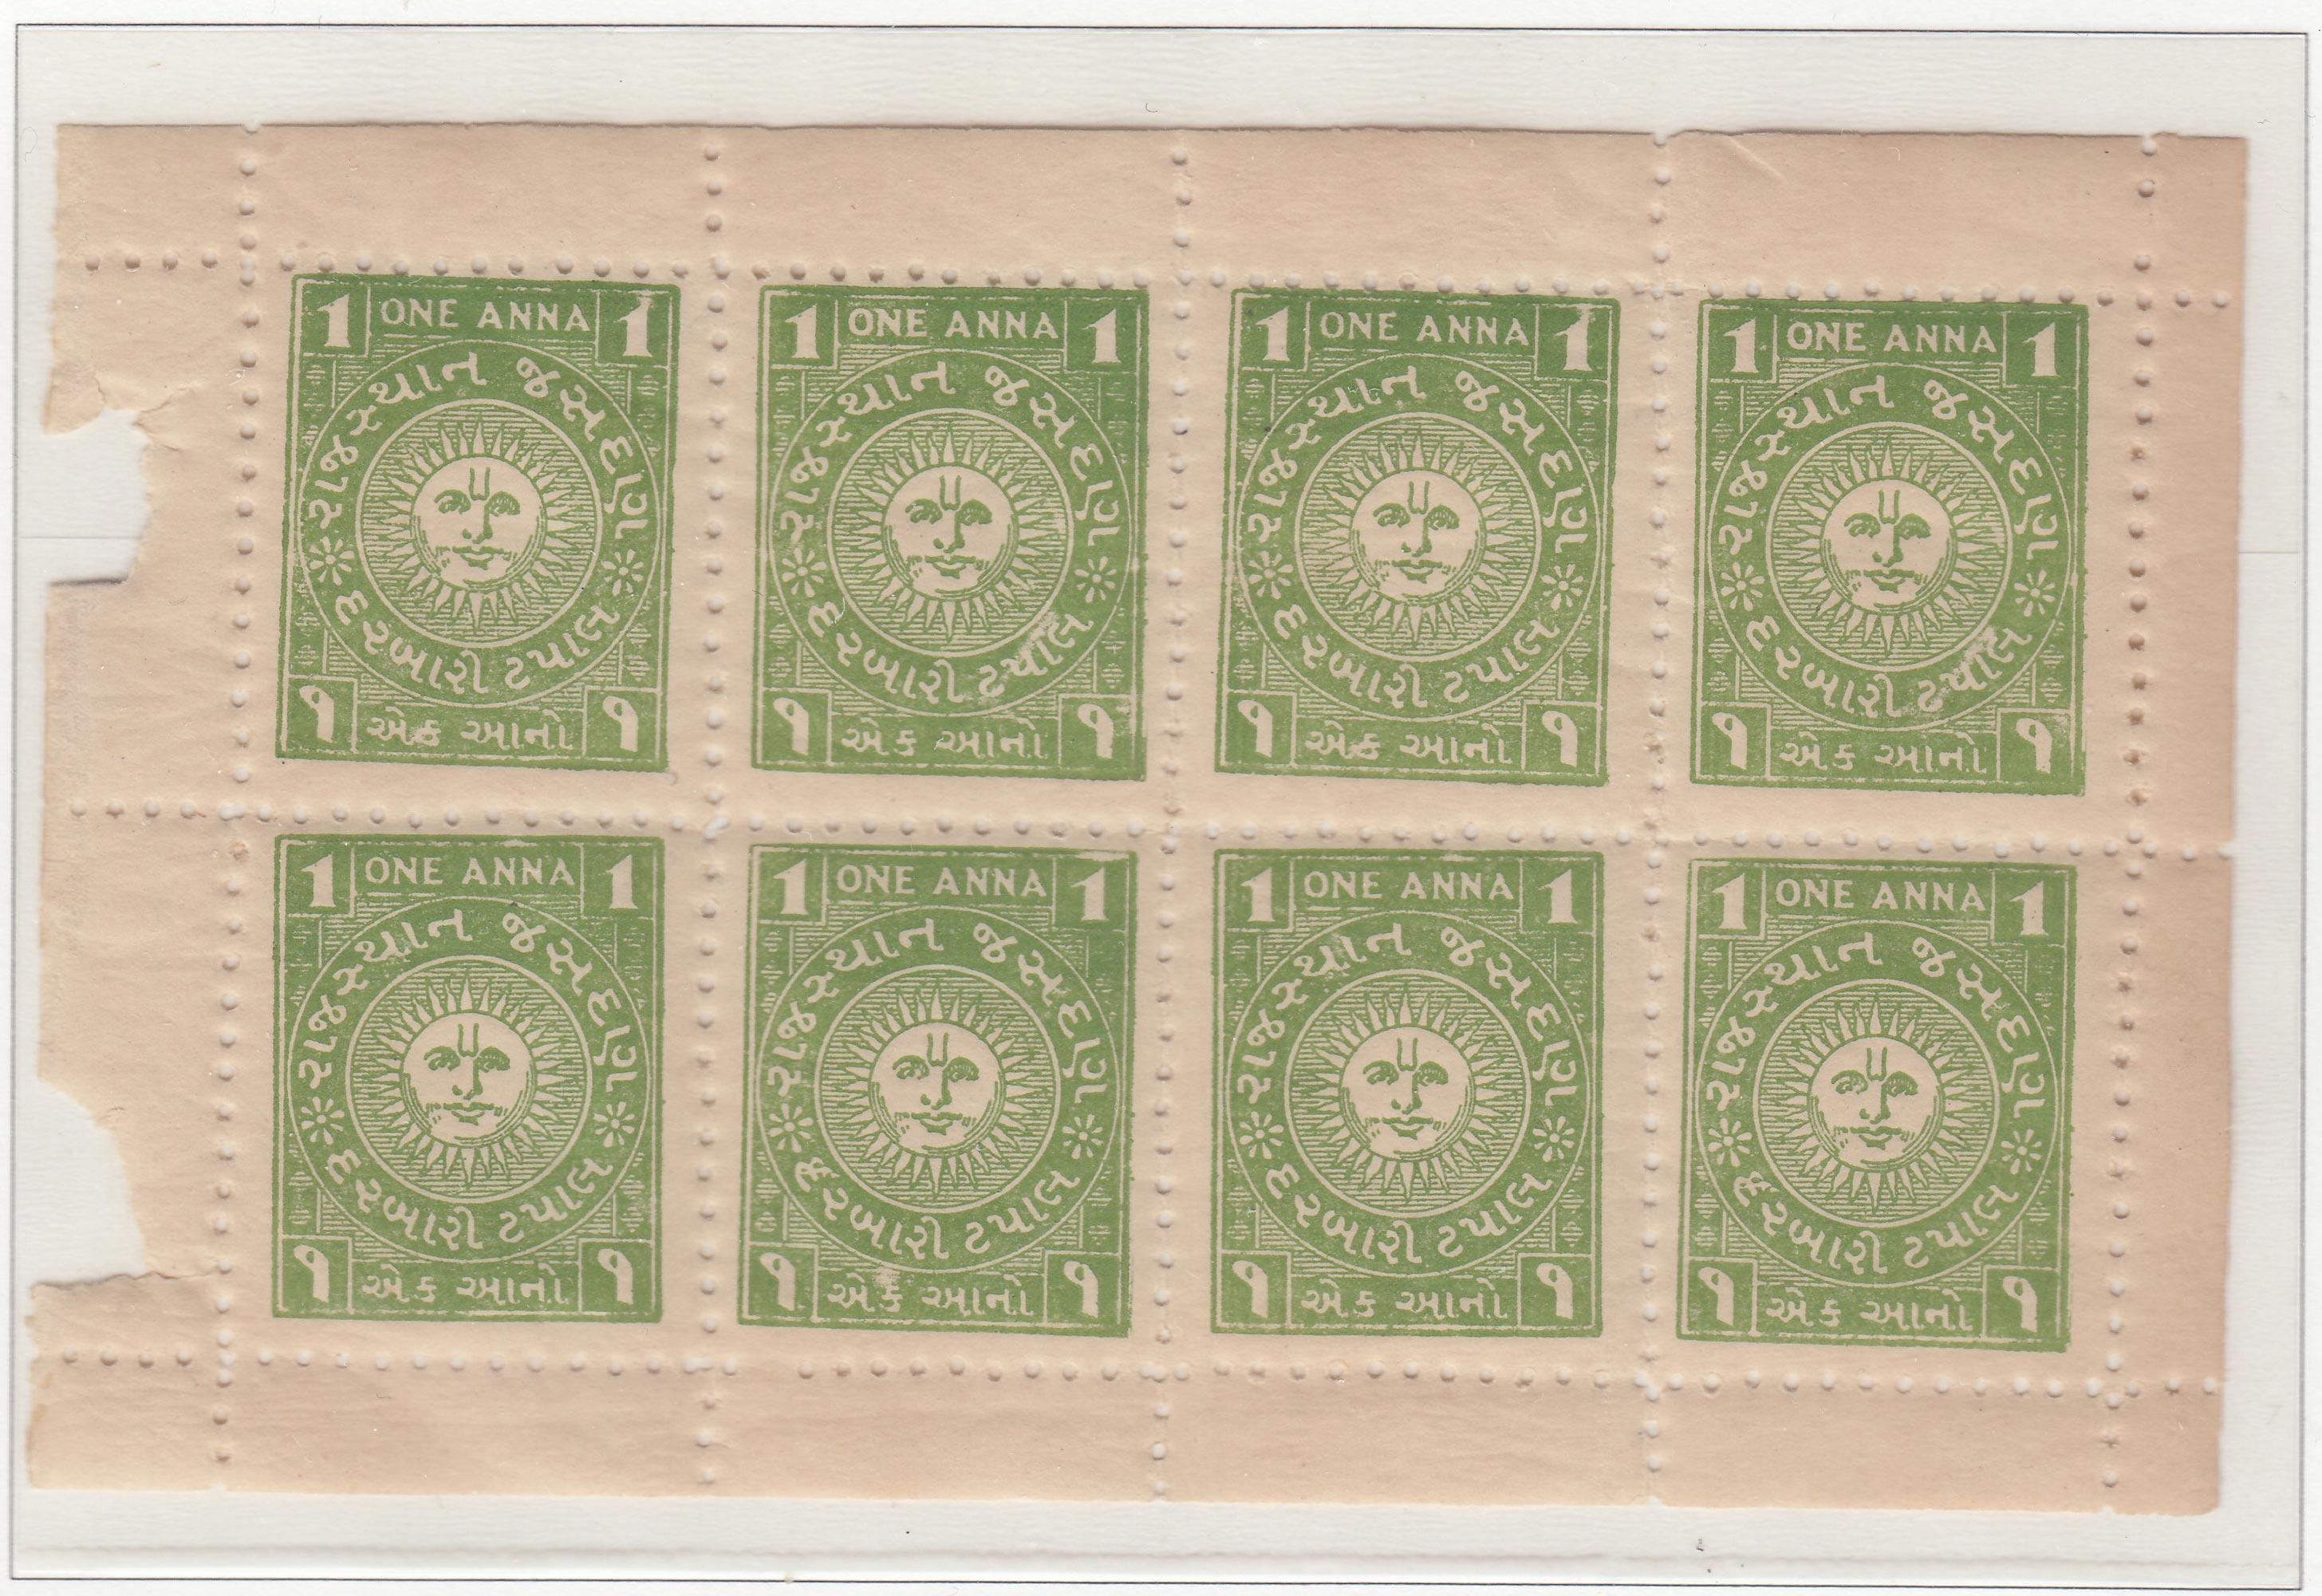 6-jasdan-1946-dull-yellow-green-complete--post-office-pane